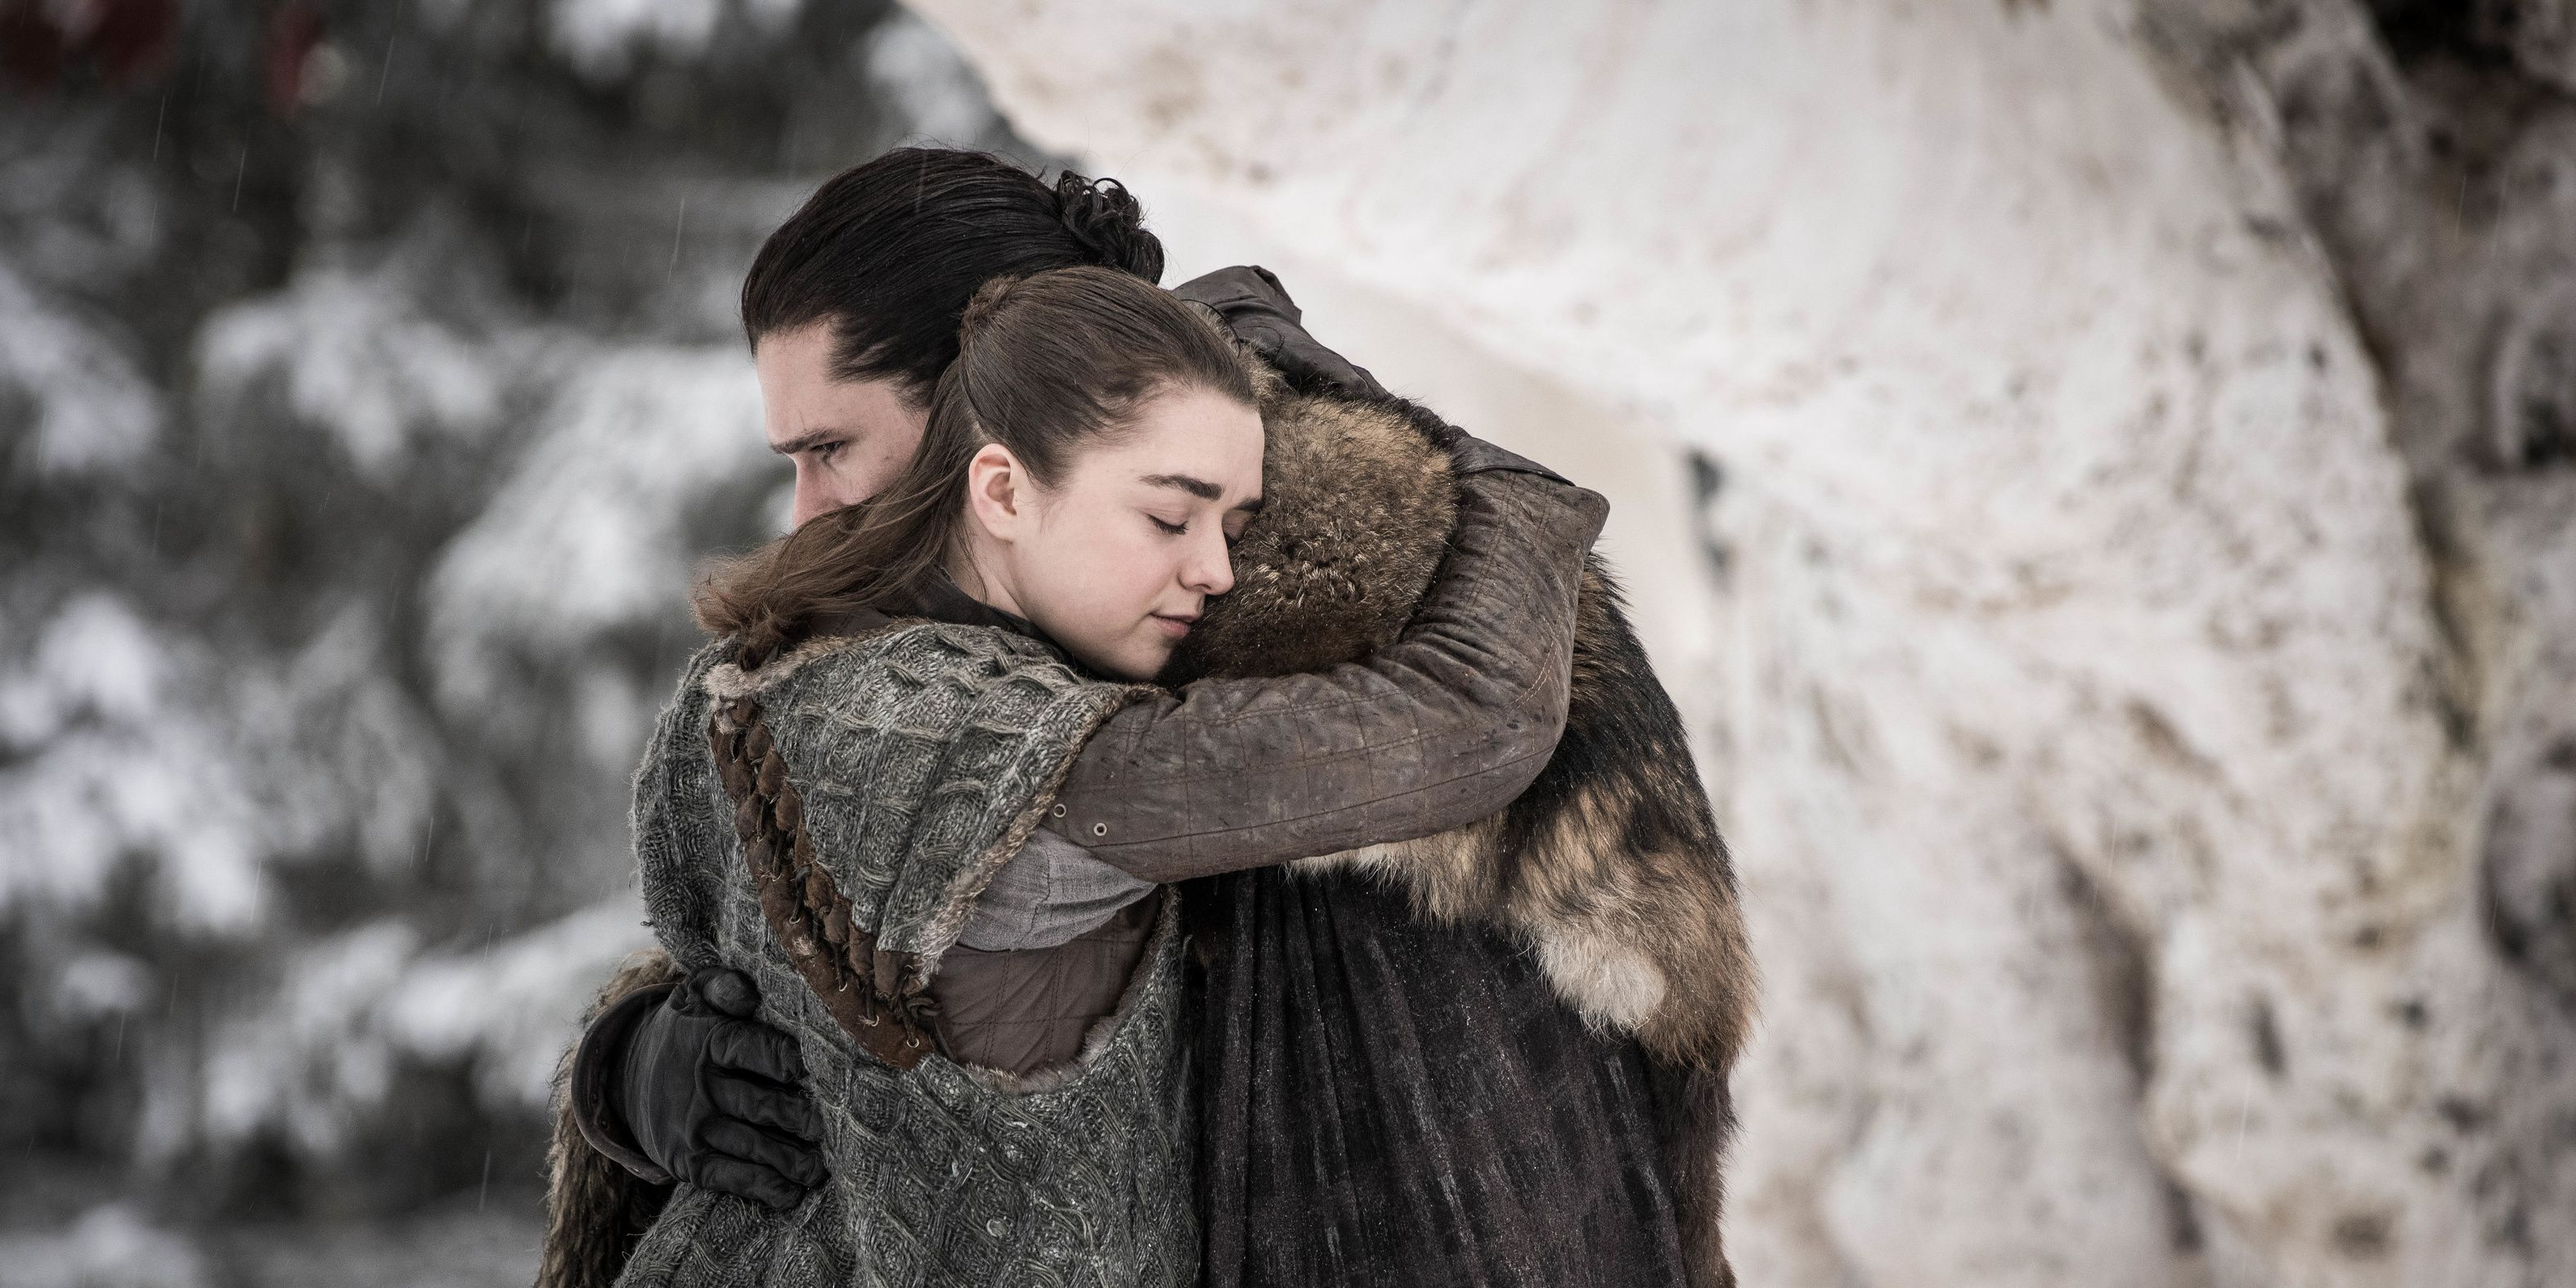 Game of Thrones season 8 episode 1: Arya and Jon Snow